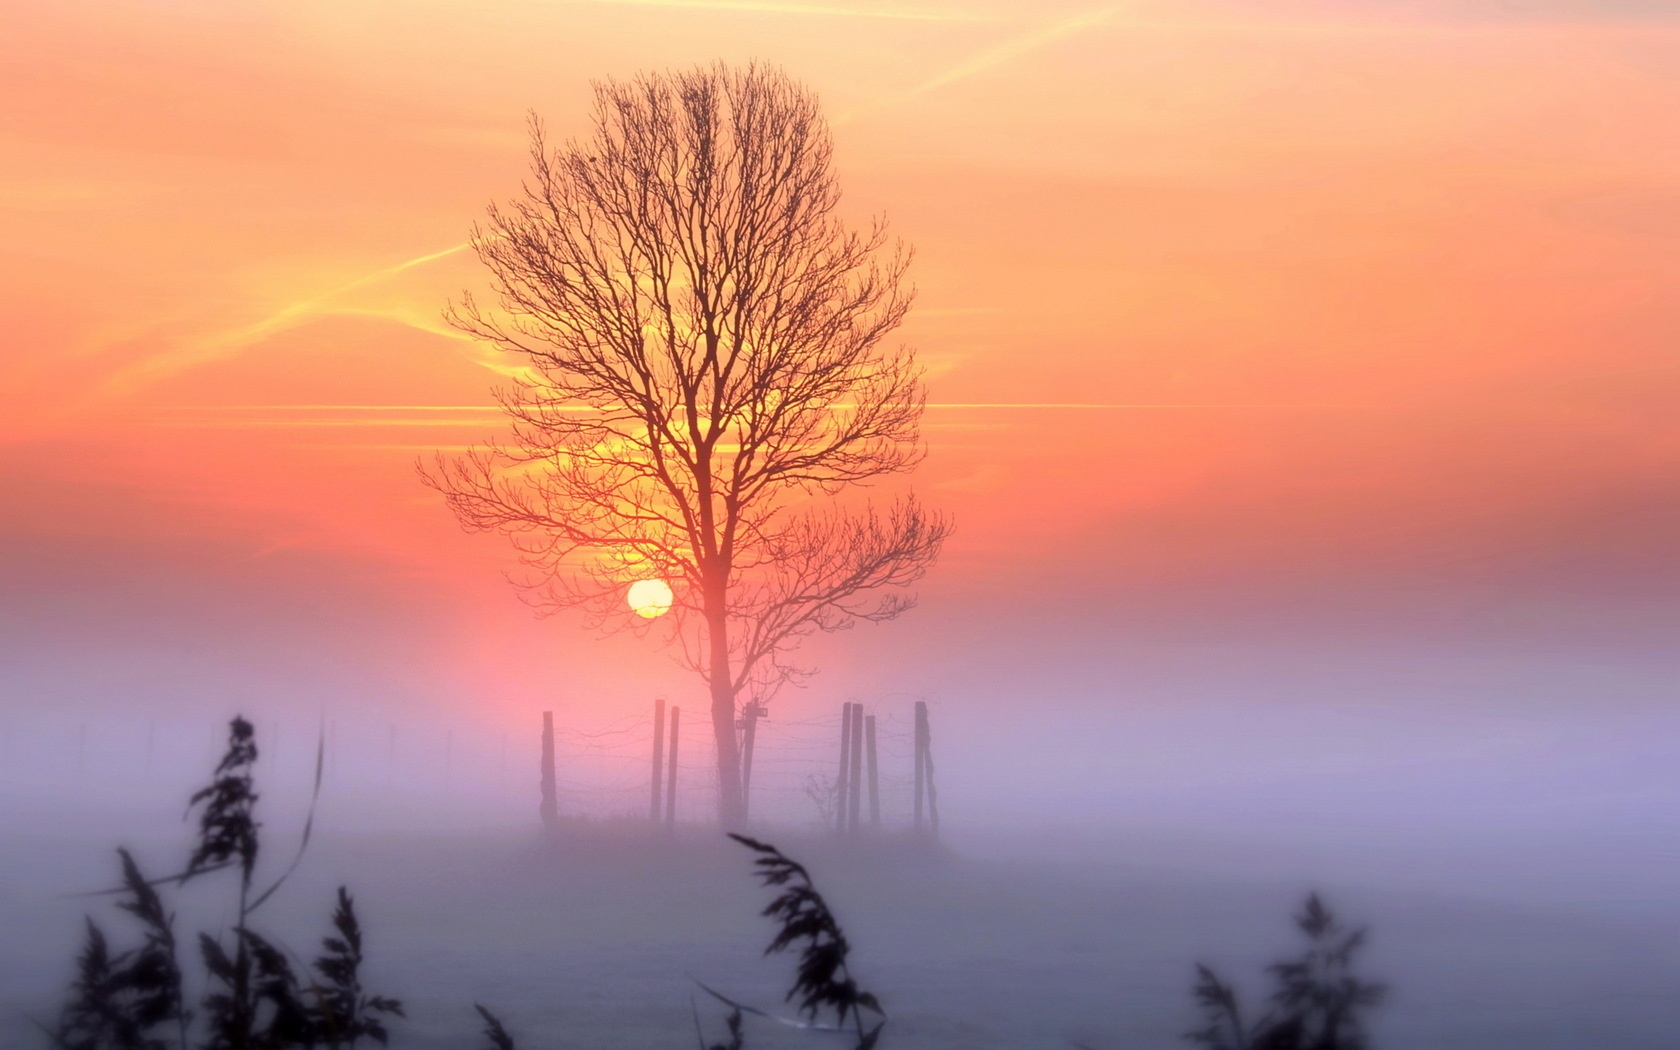 Sunset And Mist